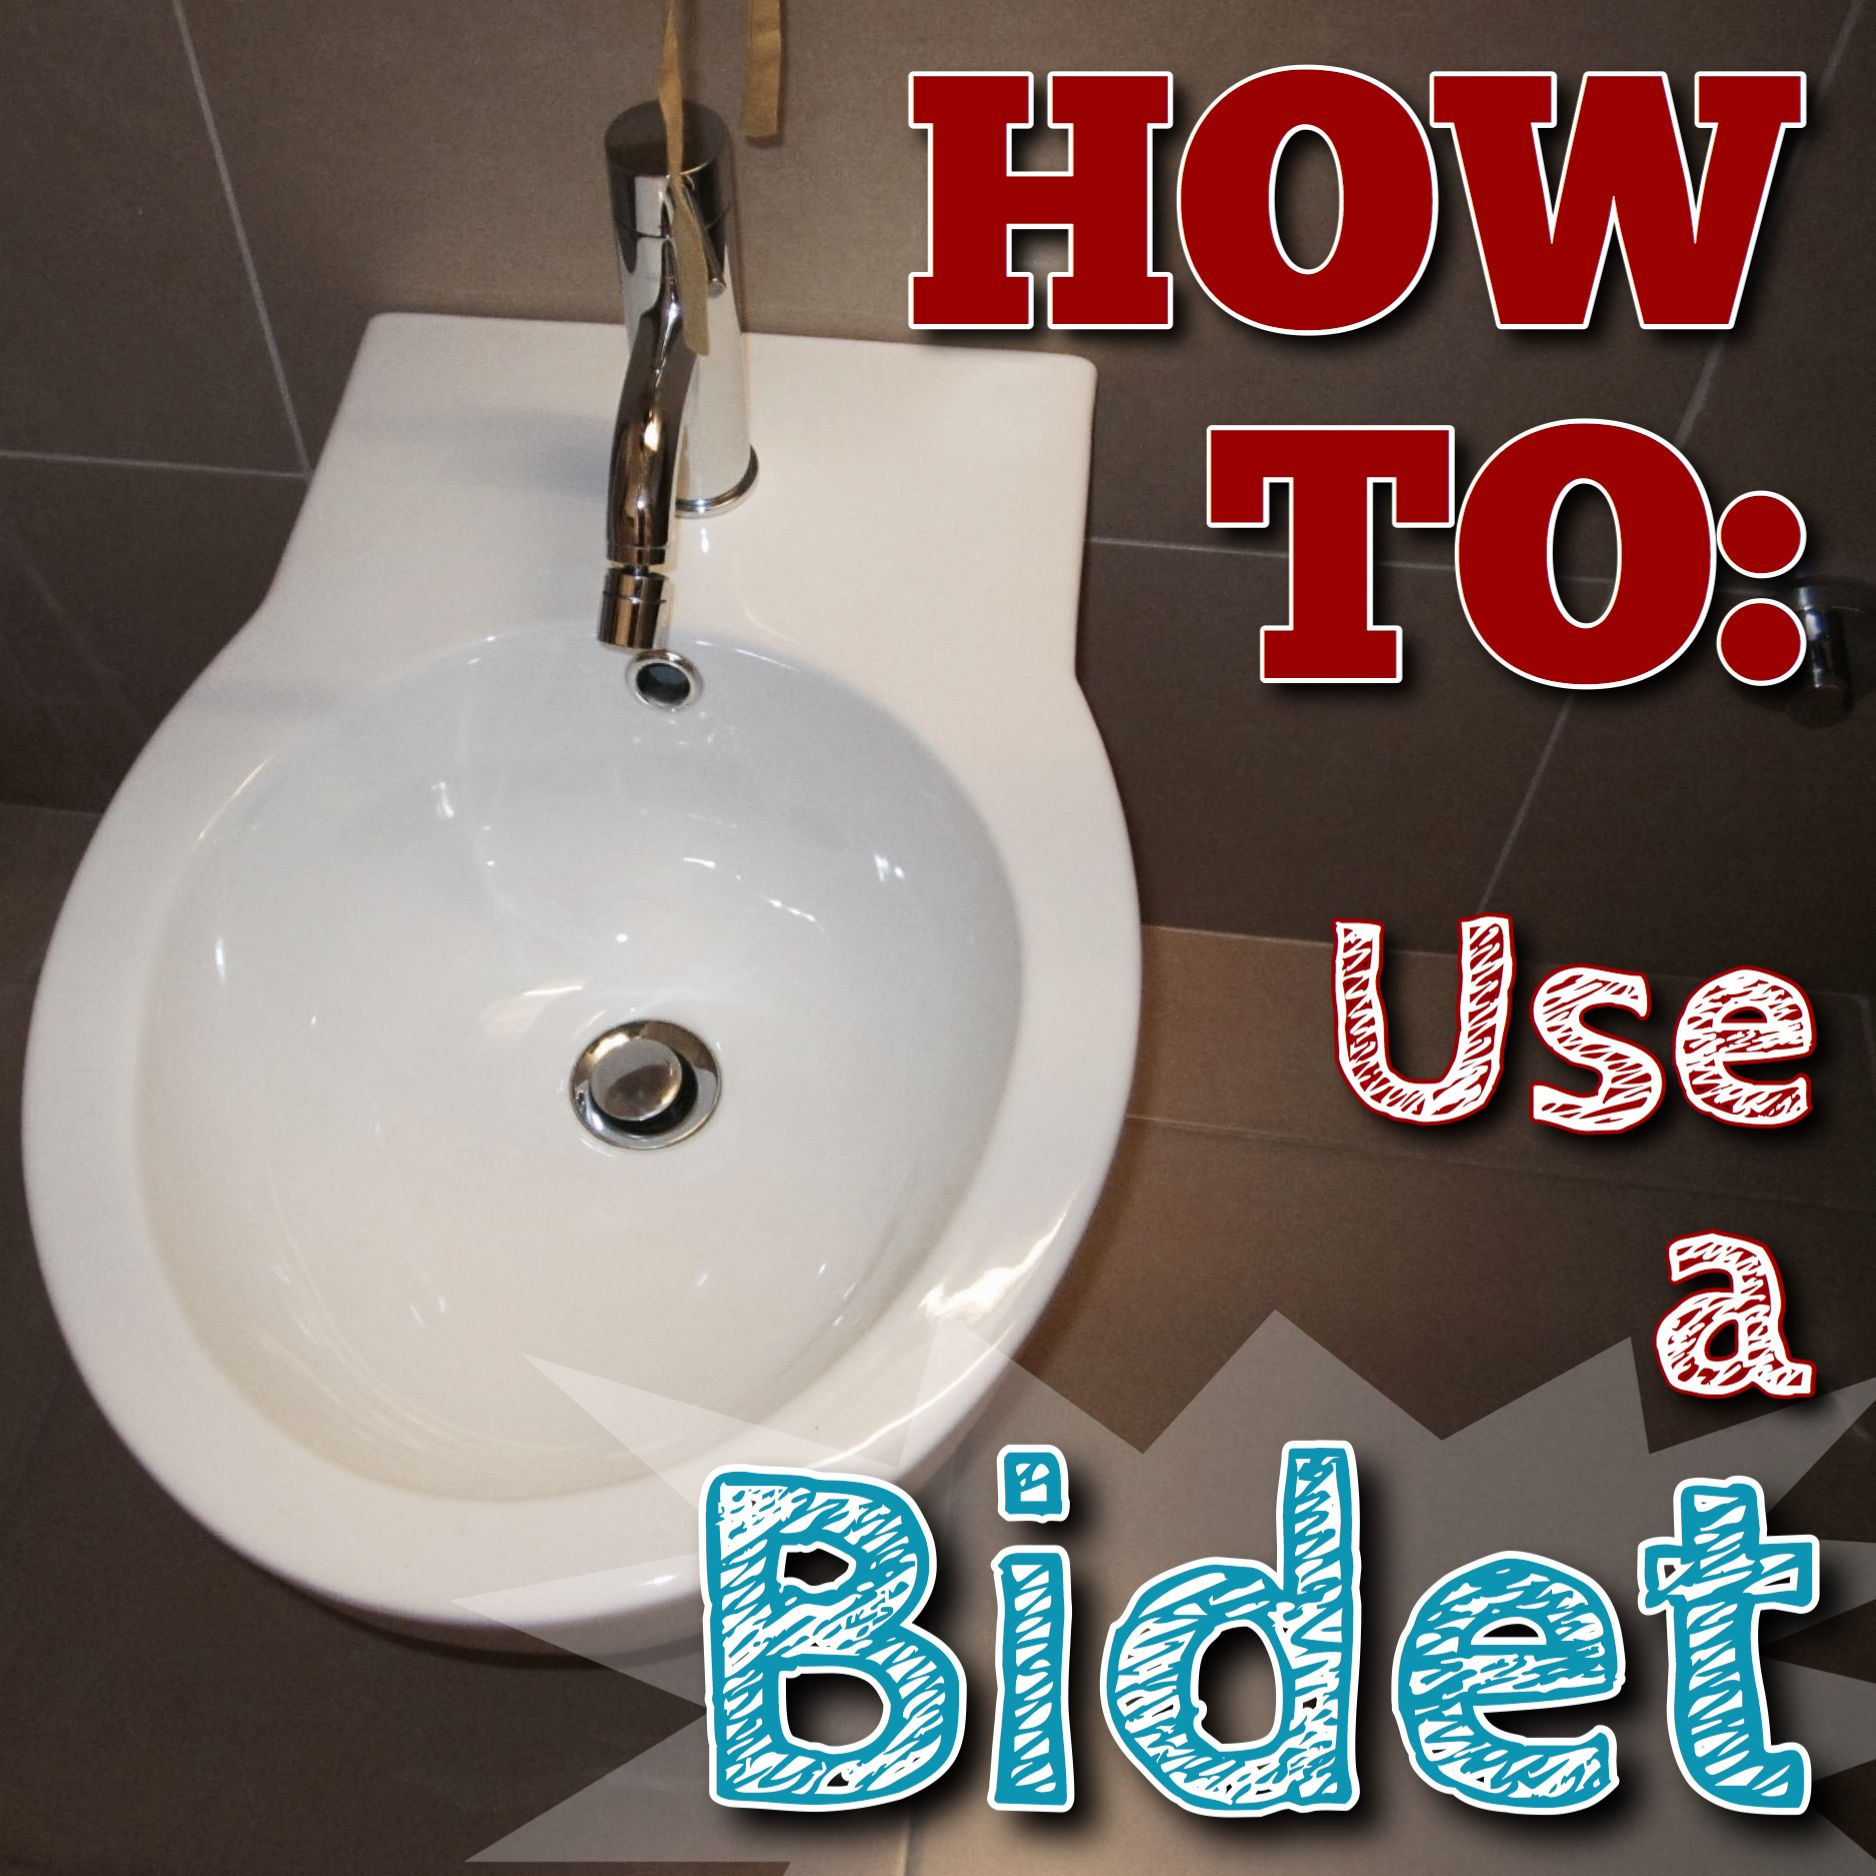 How To Use A Bidet Travel Planner Bidet Italy Travel